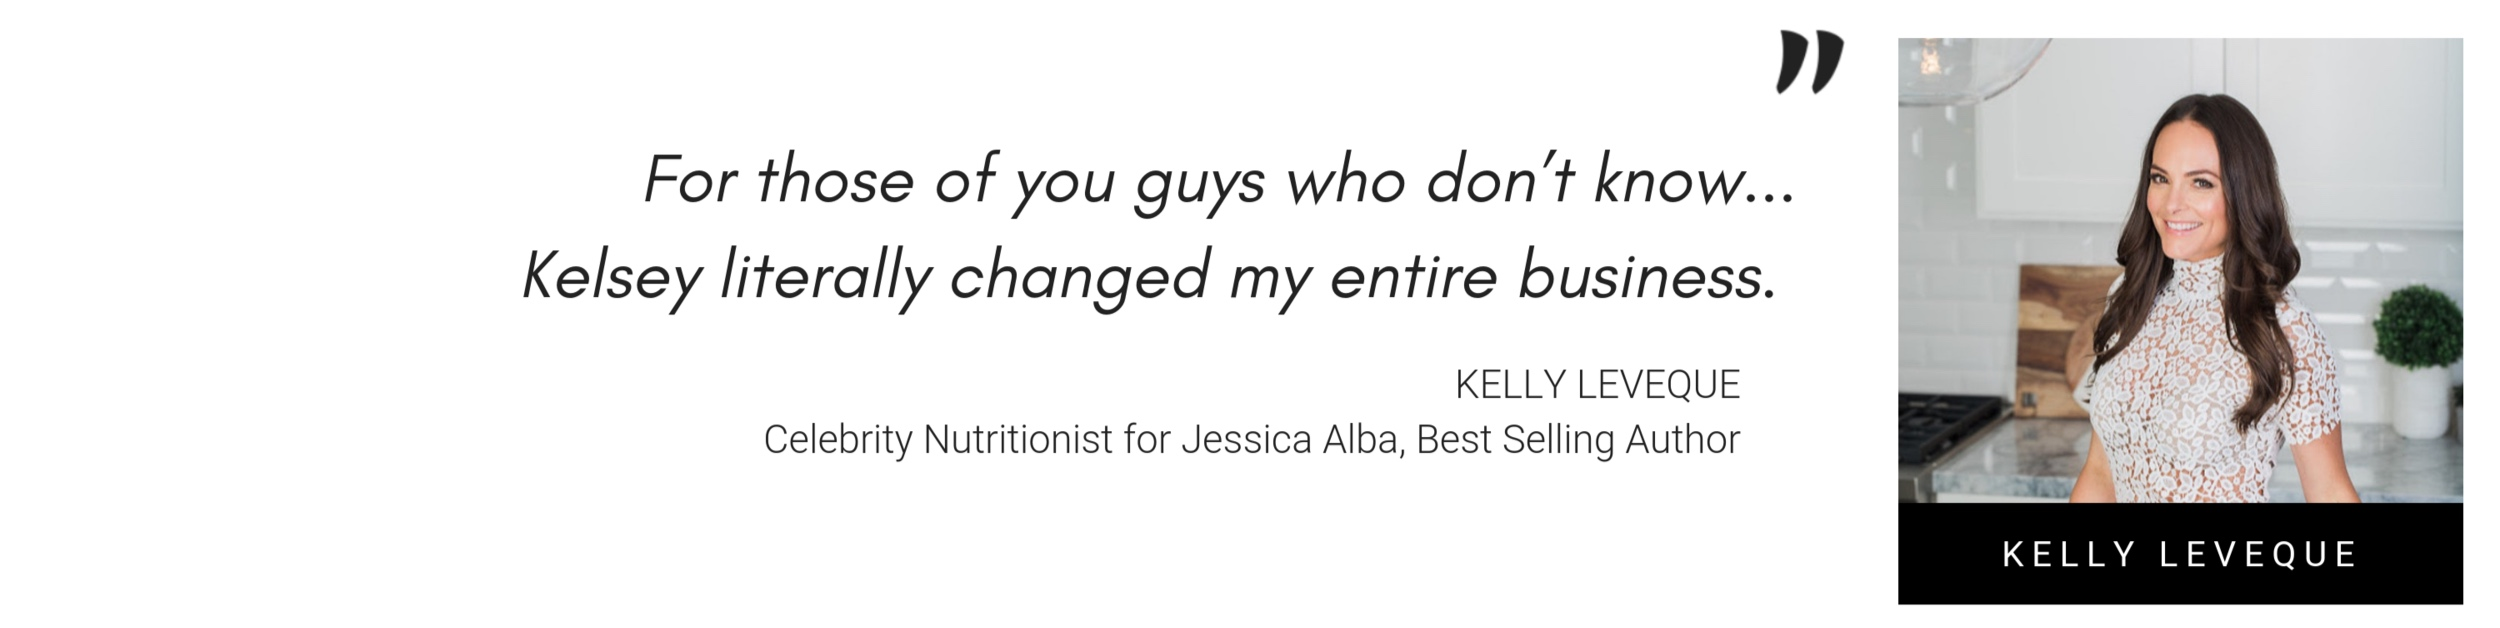 kelly leveque promotional quote about Kelsey Murphy